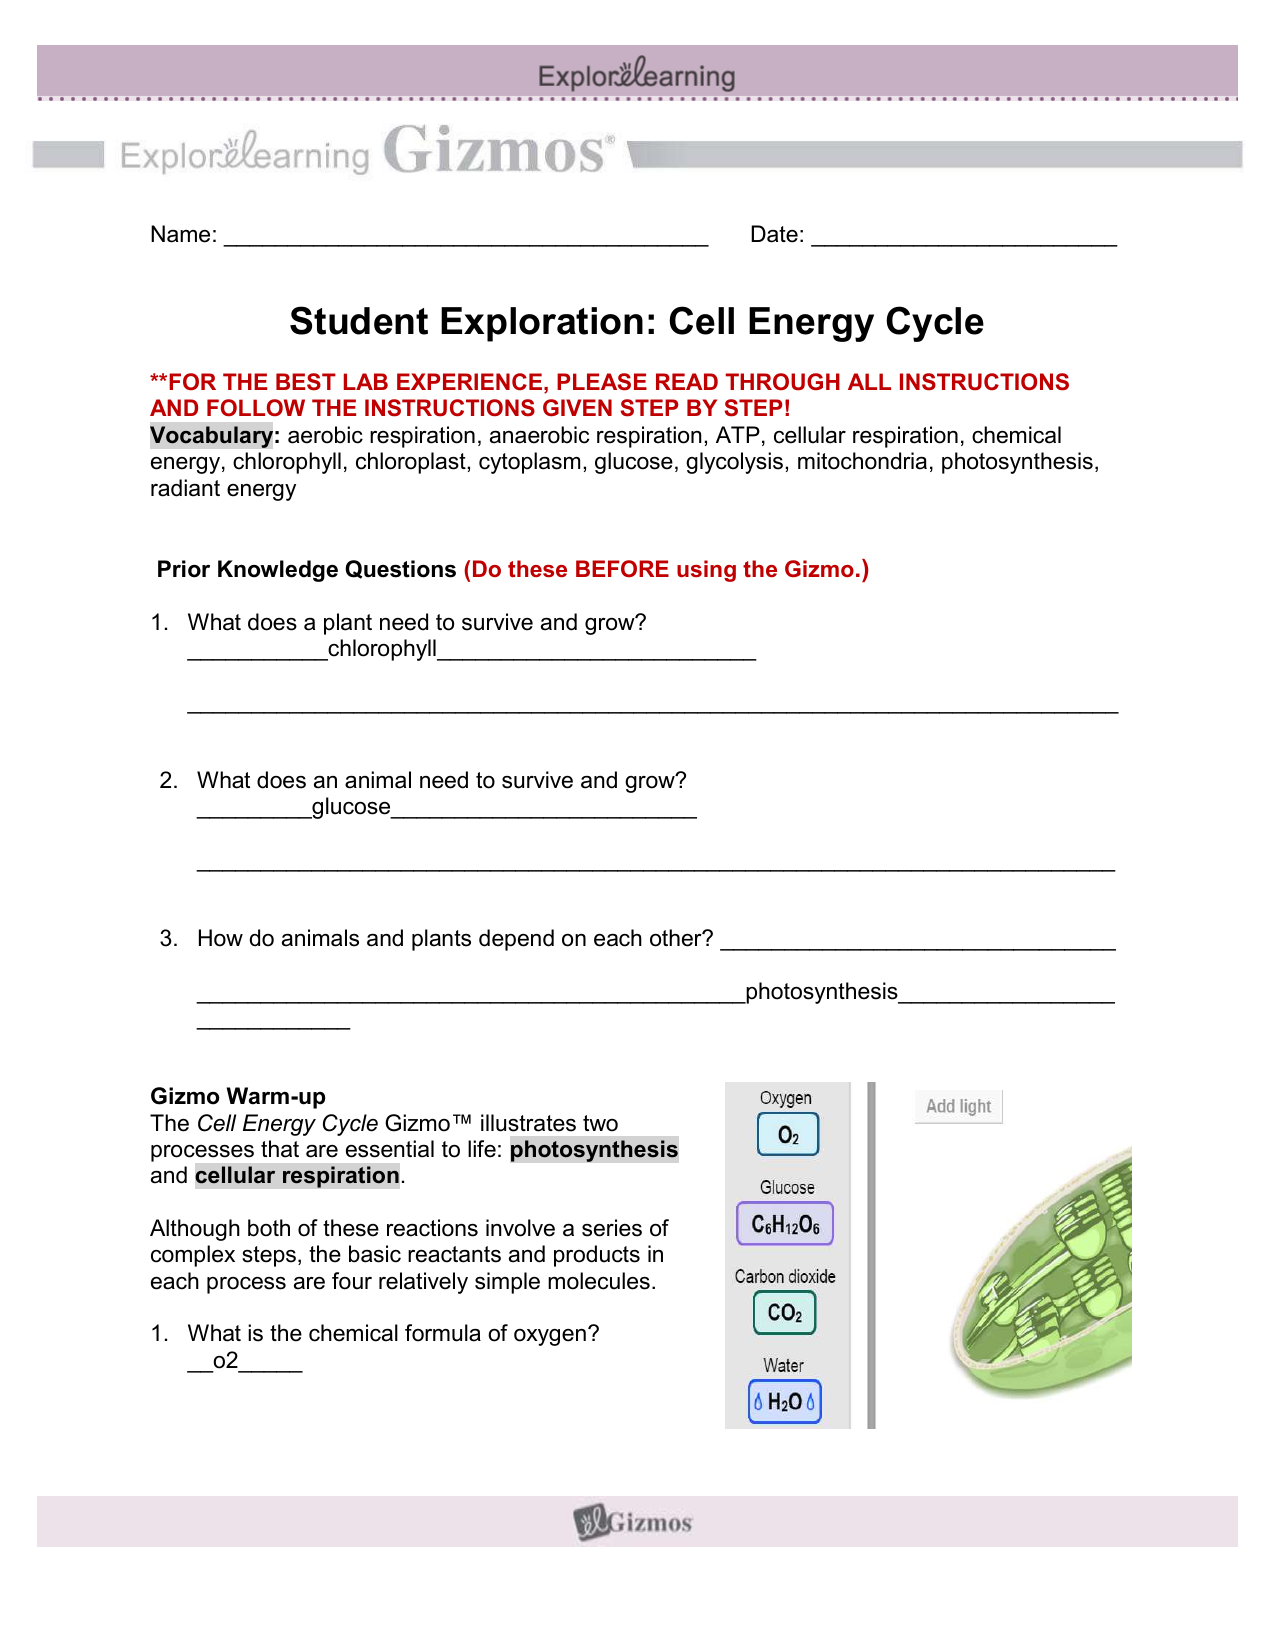 Student Exploration - Cell Energy Cycle (1)